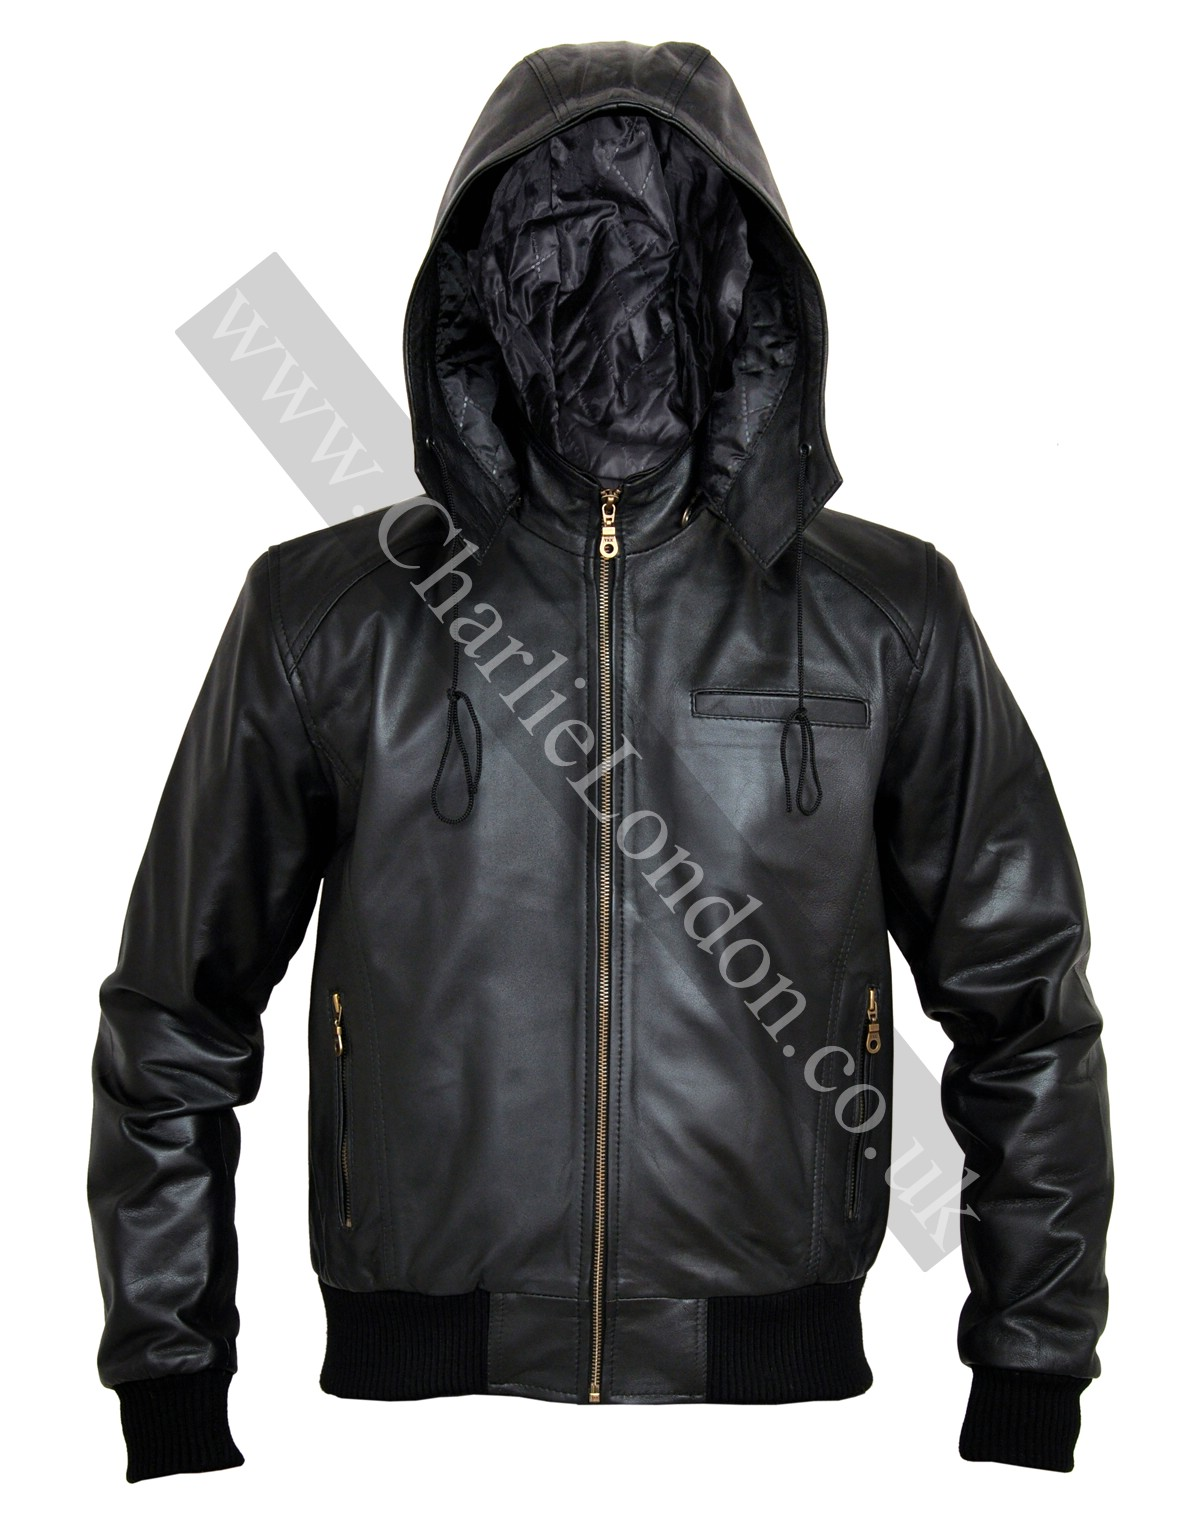 CL025 Mens Leather Jacket with Zip-Out Hood